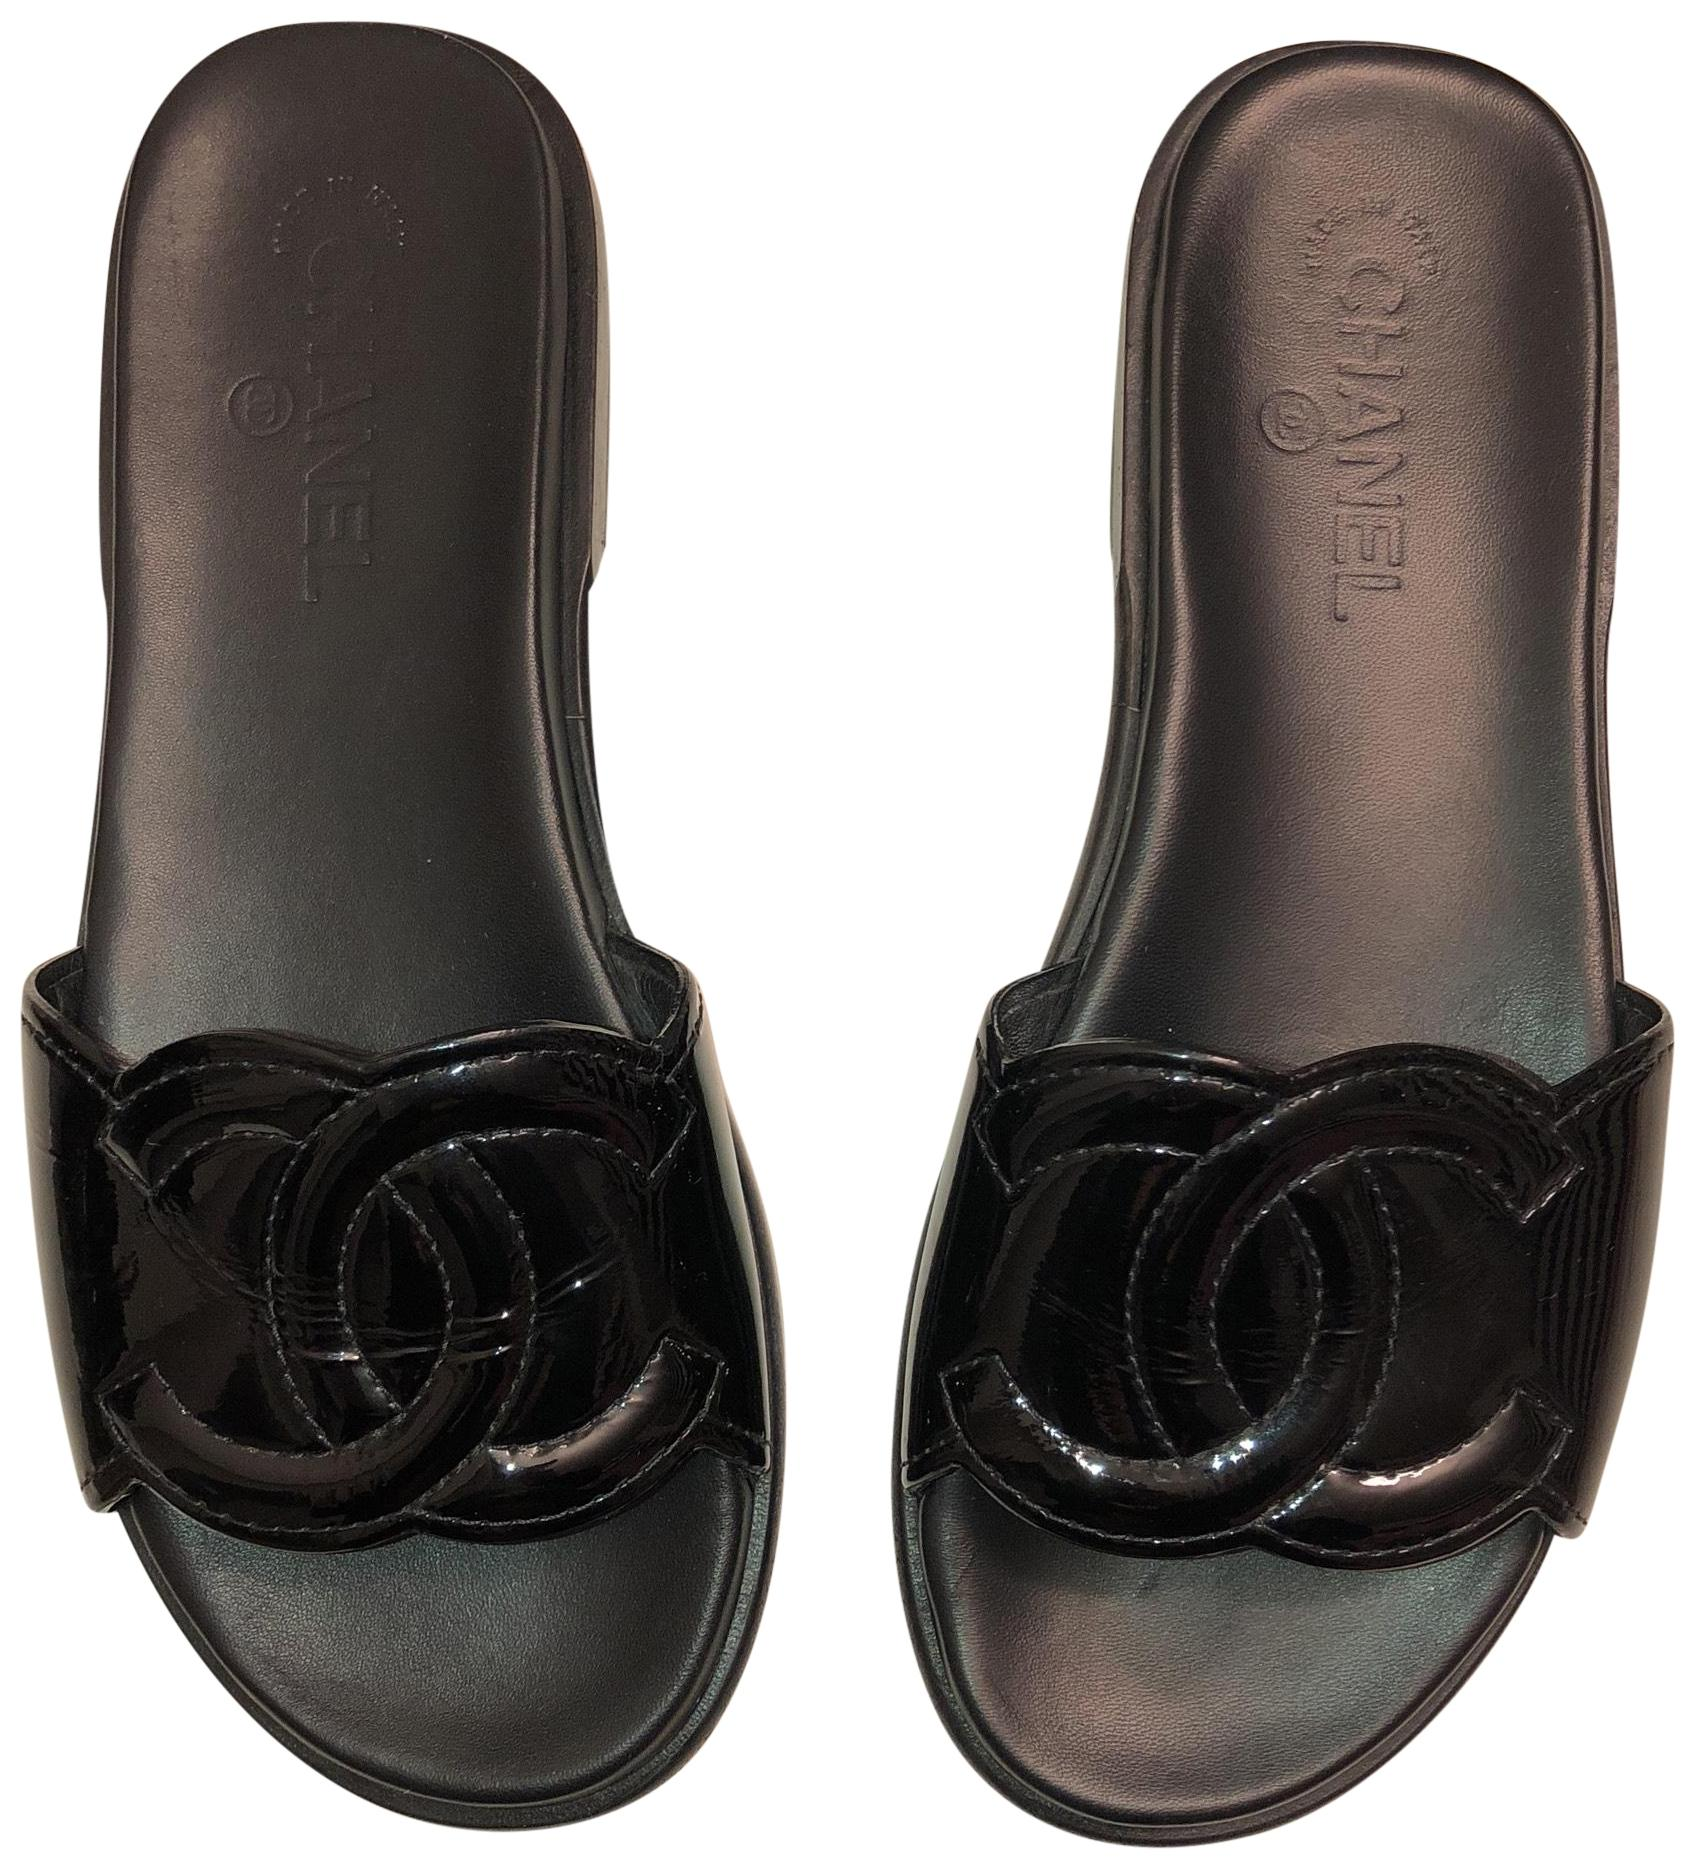 sRsmhPP9Or Leather Mules